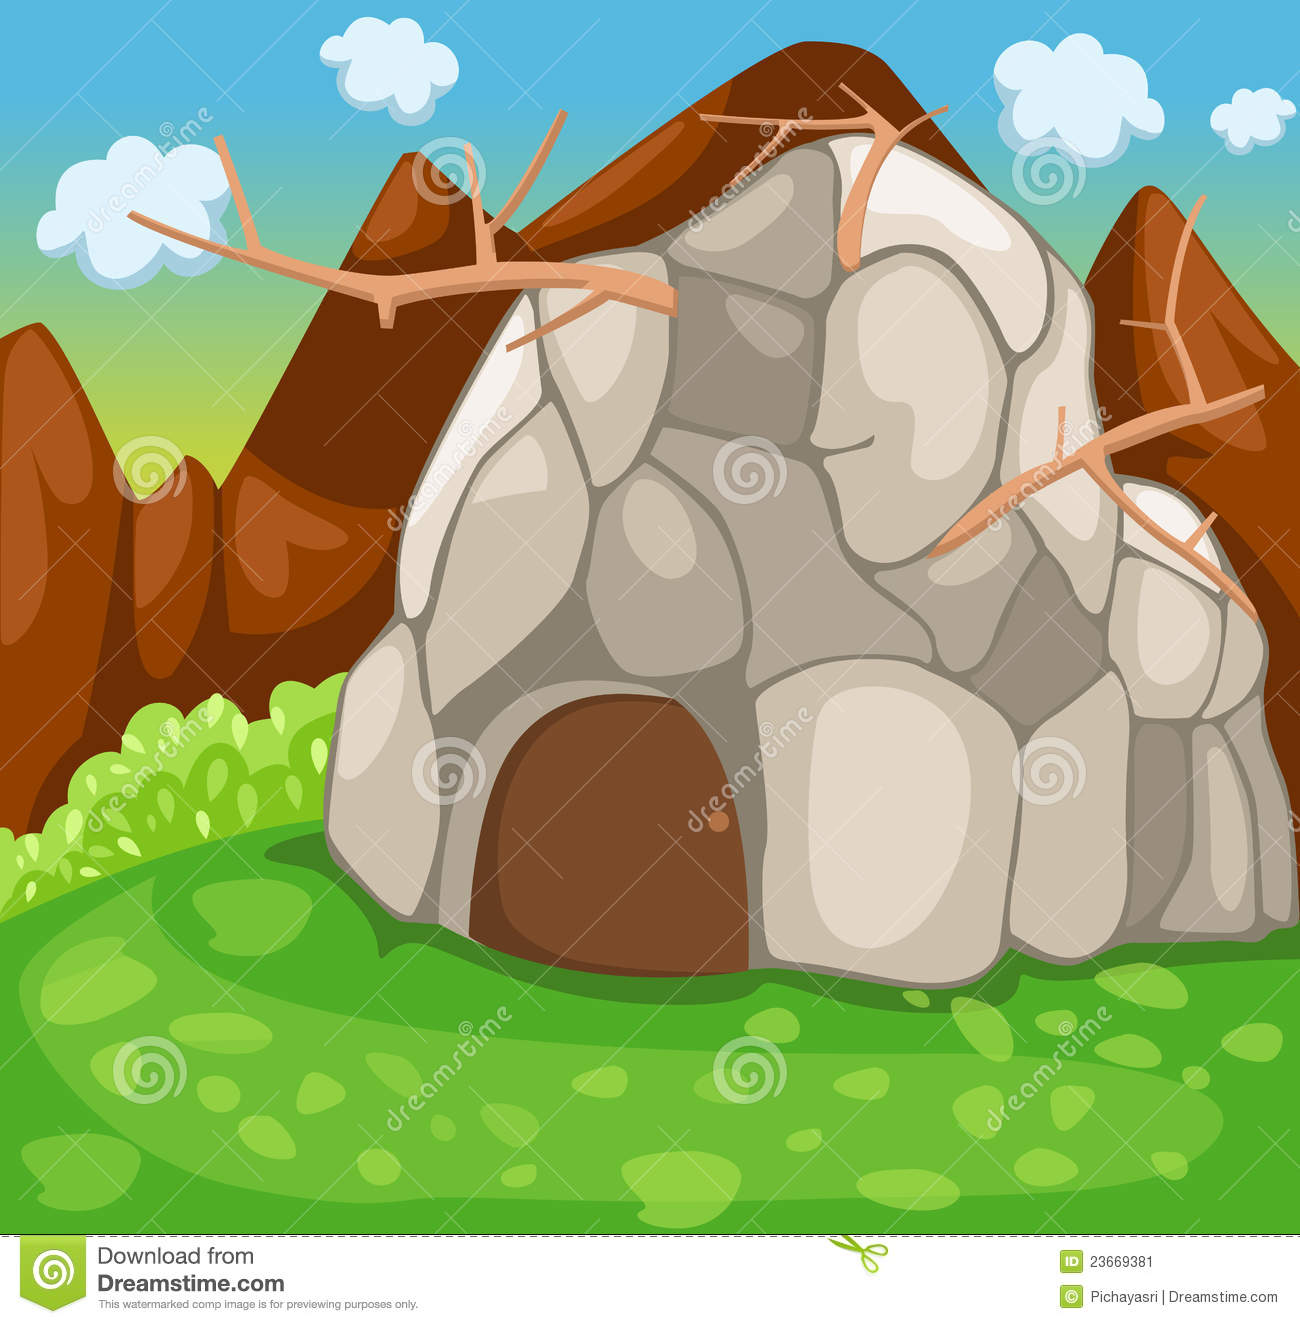 clipart house on rock - photo #13